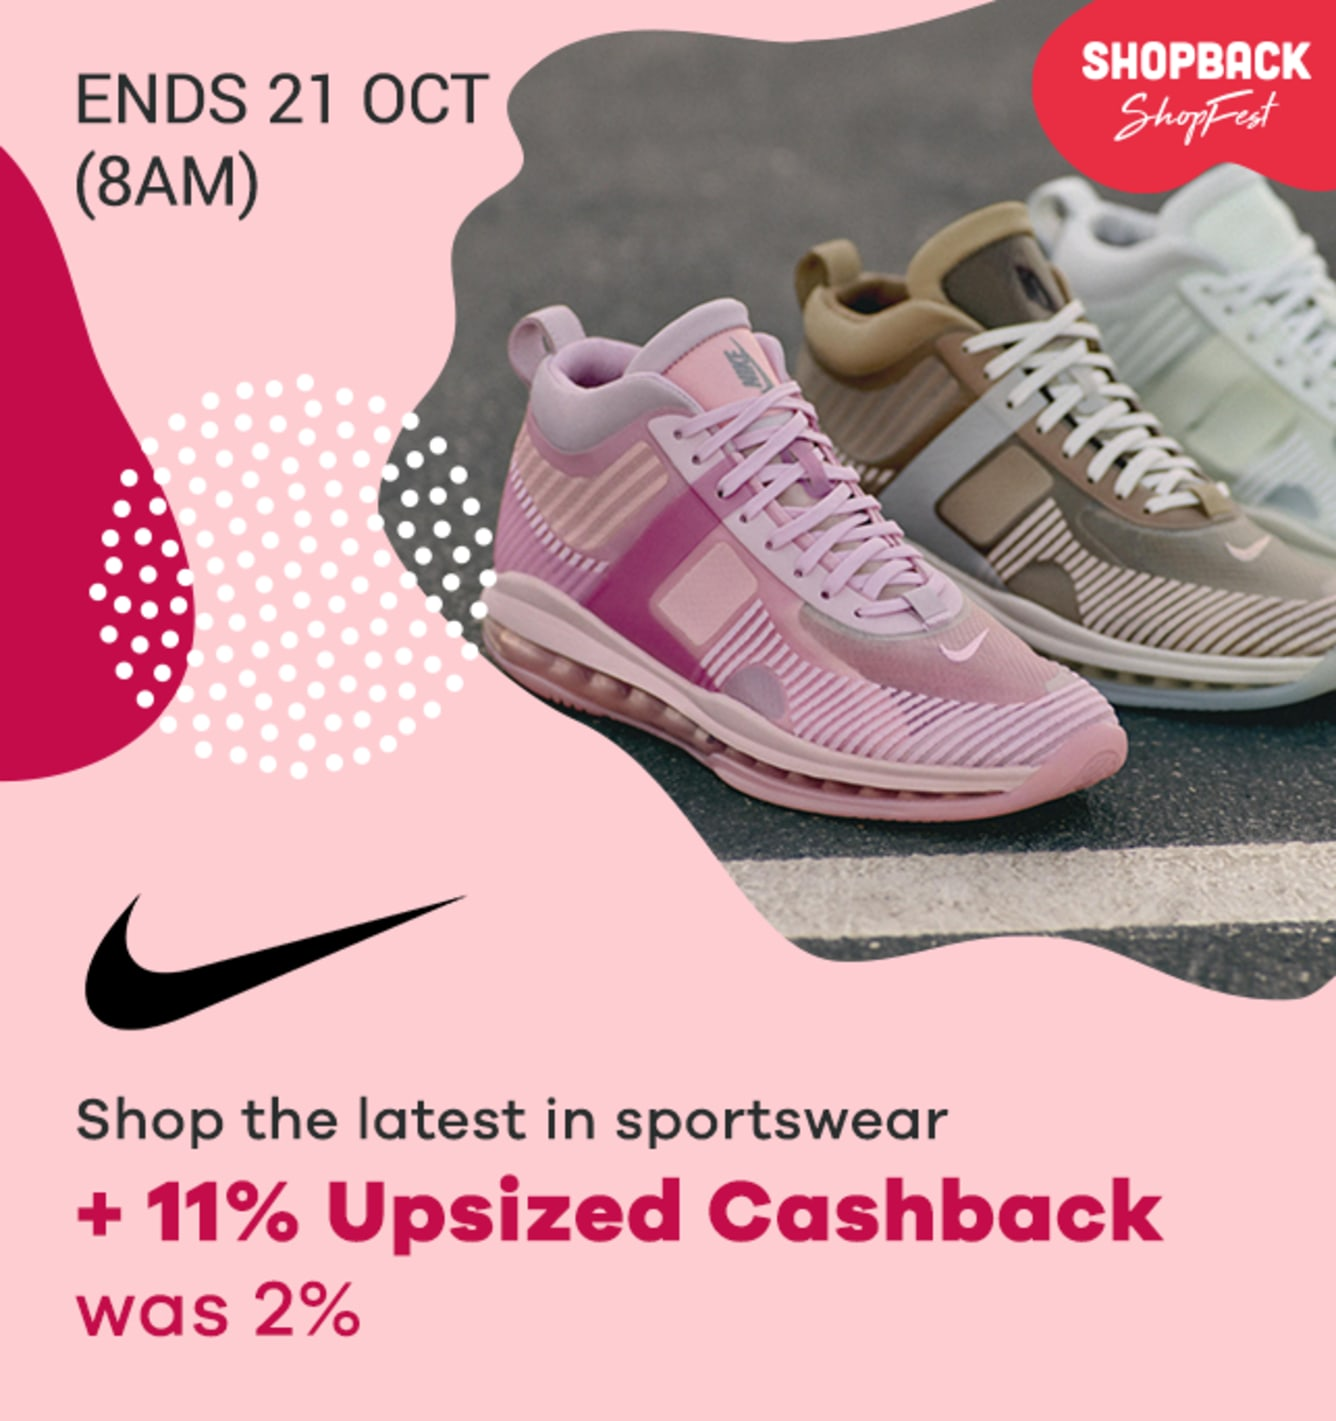 Nike EPIC Upsized Cashback